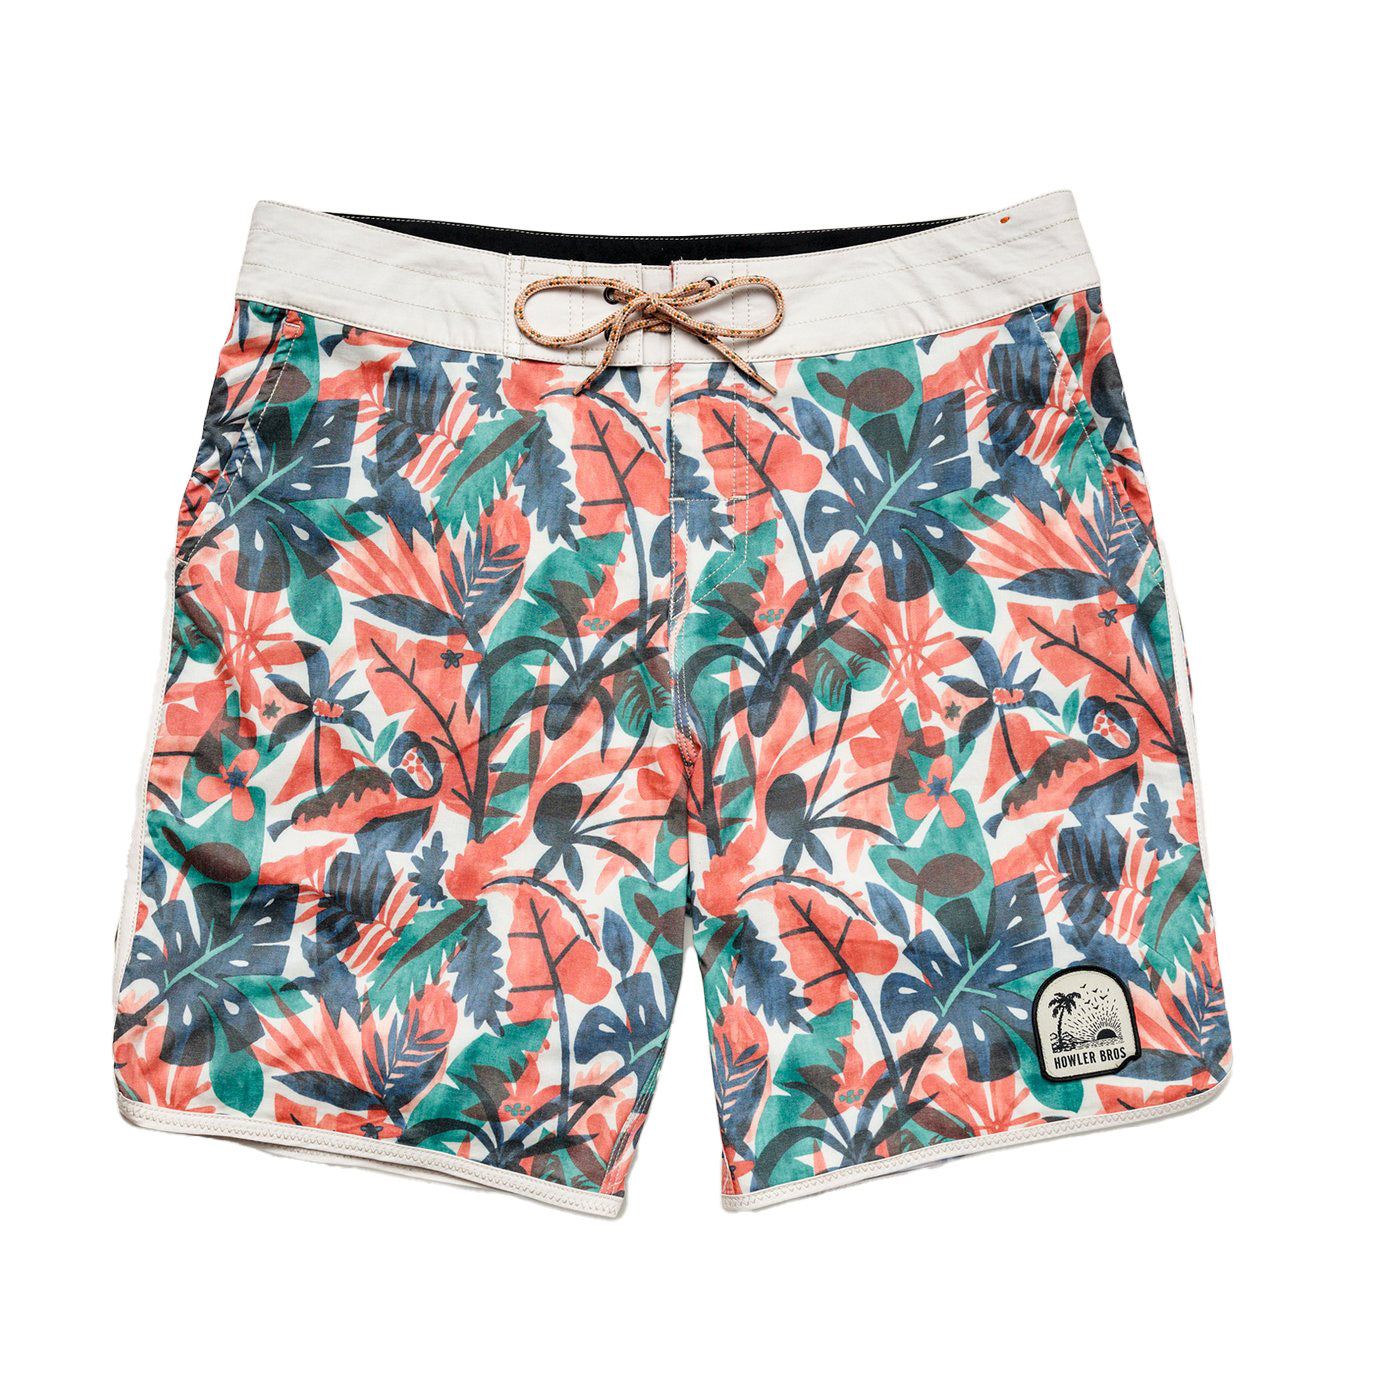 Howler Brothers Stretch Bruja Boardshort